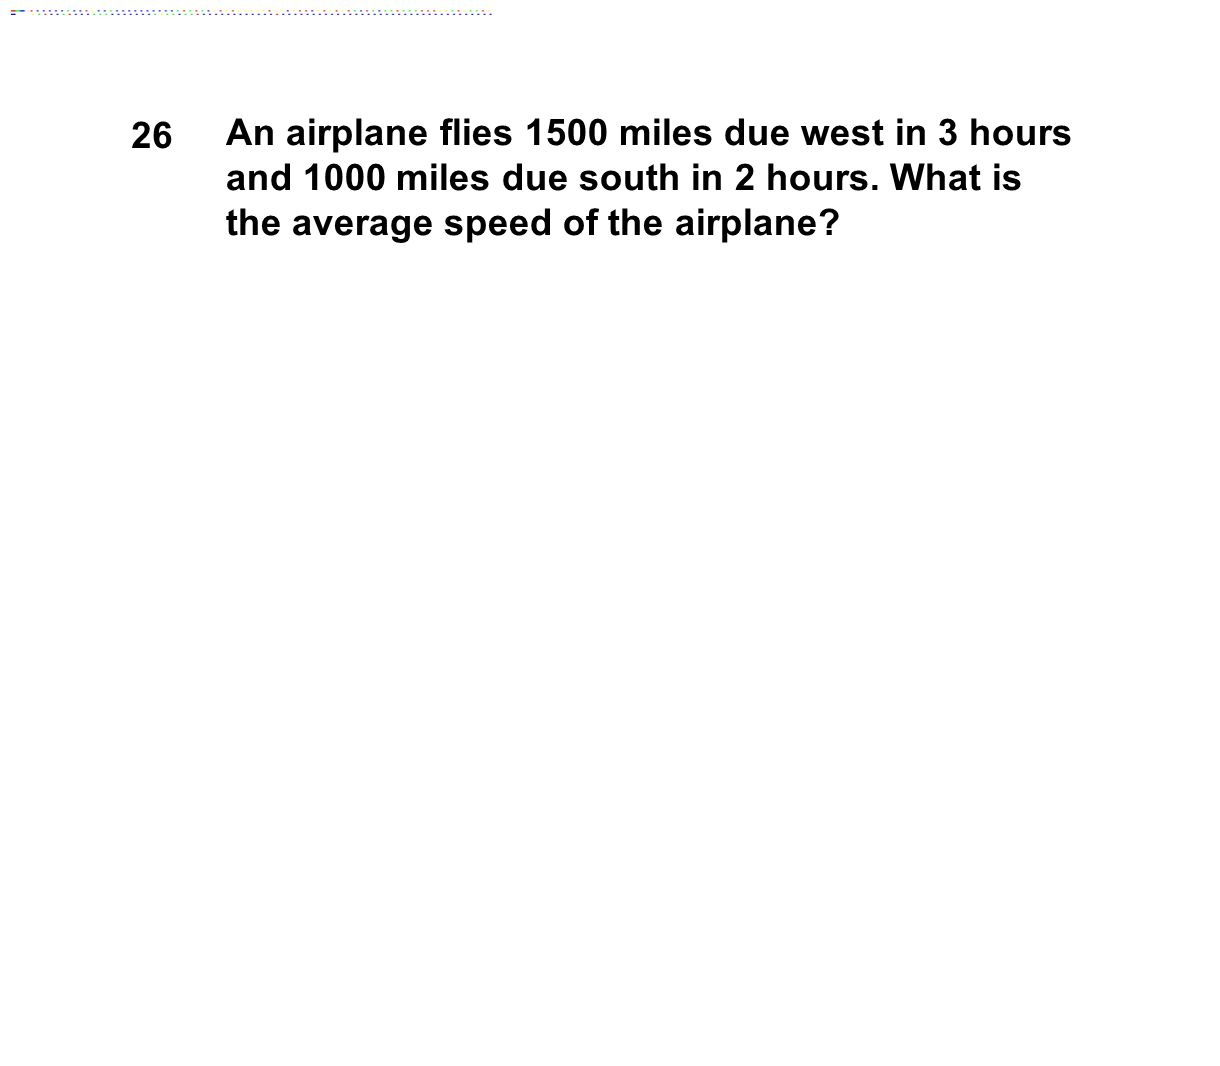 26 An airplane flies 1500 miles due west in 3 hours and 1000 miles due south in 2 hours. What is the average speed of the airplane?